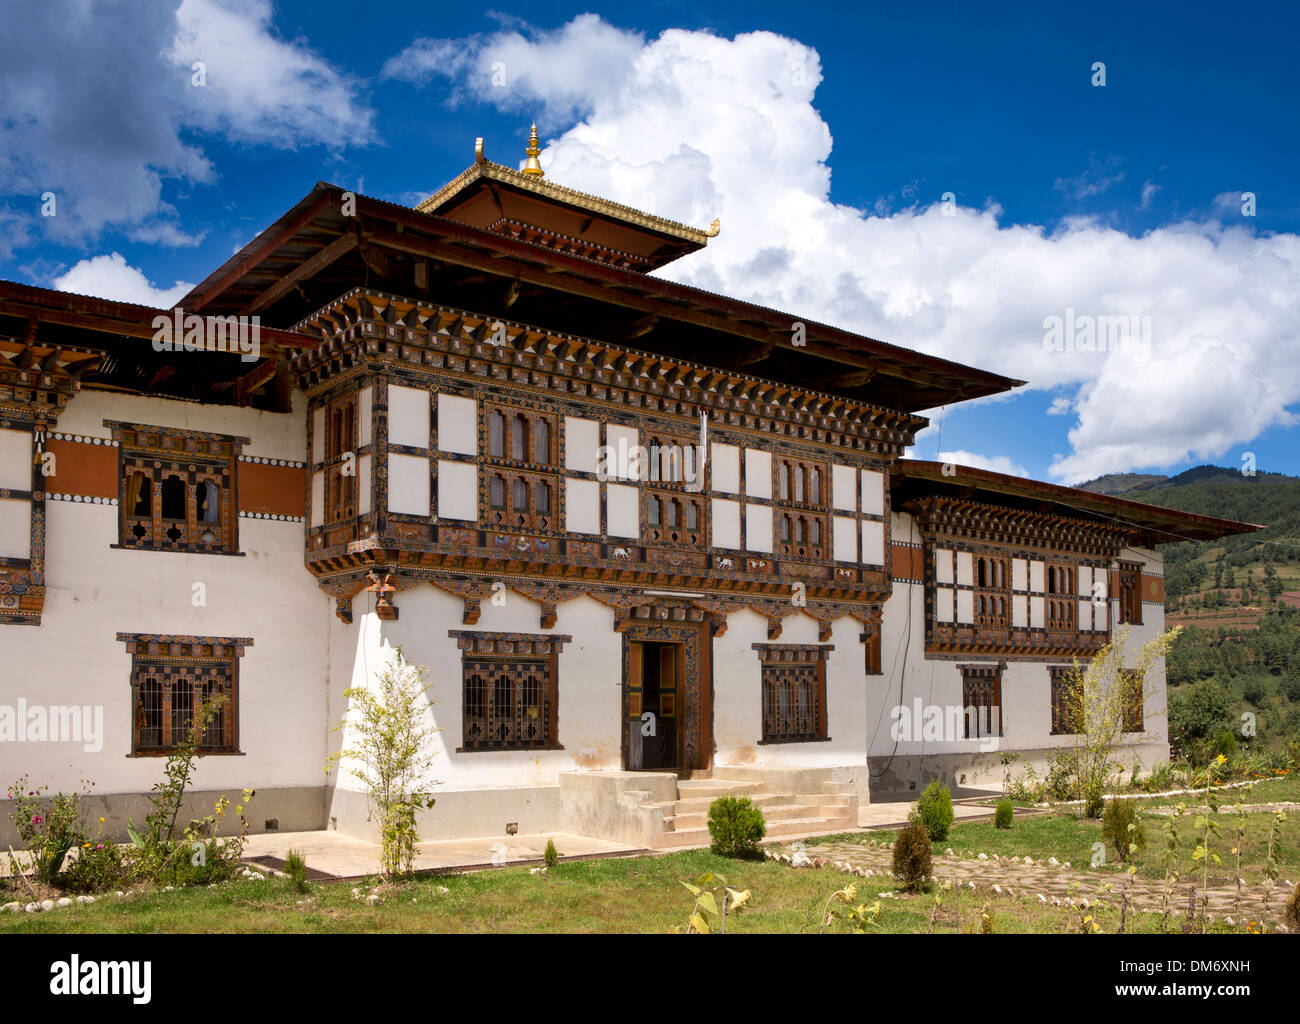 Bhutan, Bumthang Valley, front of Nunnery above Membar Tsho, Burning Lake - Stock Image